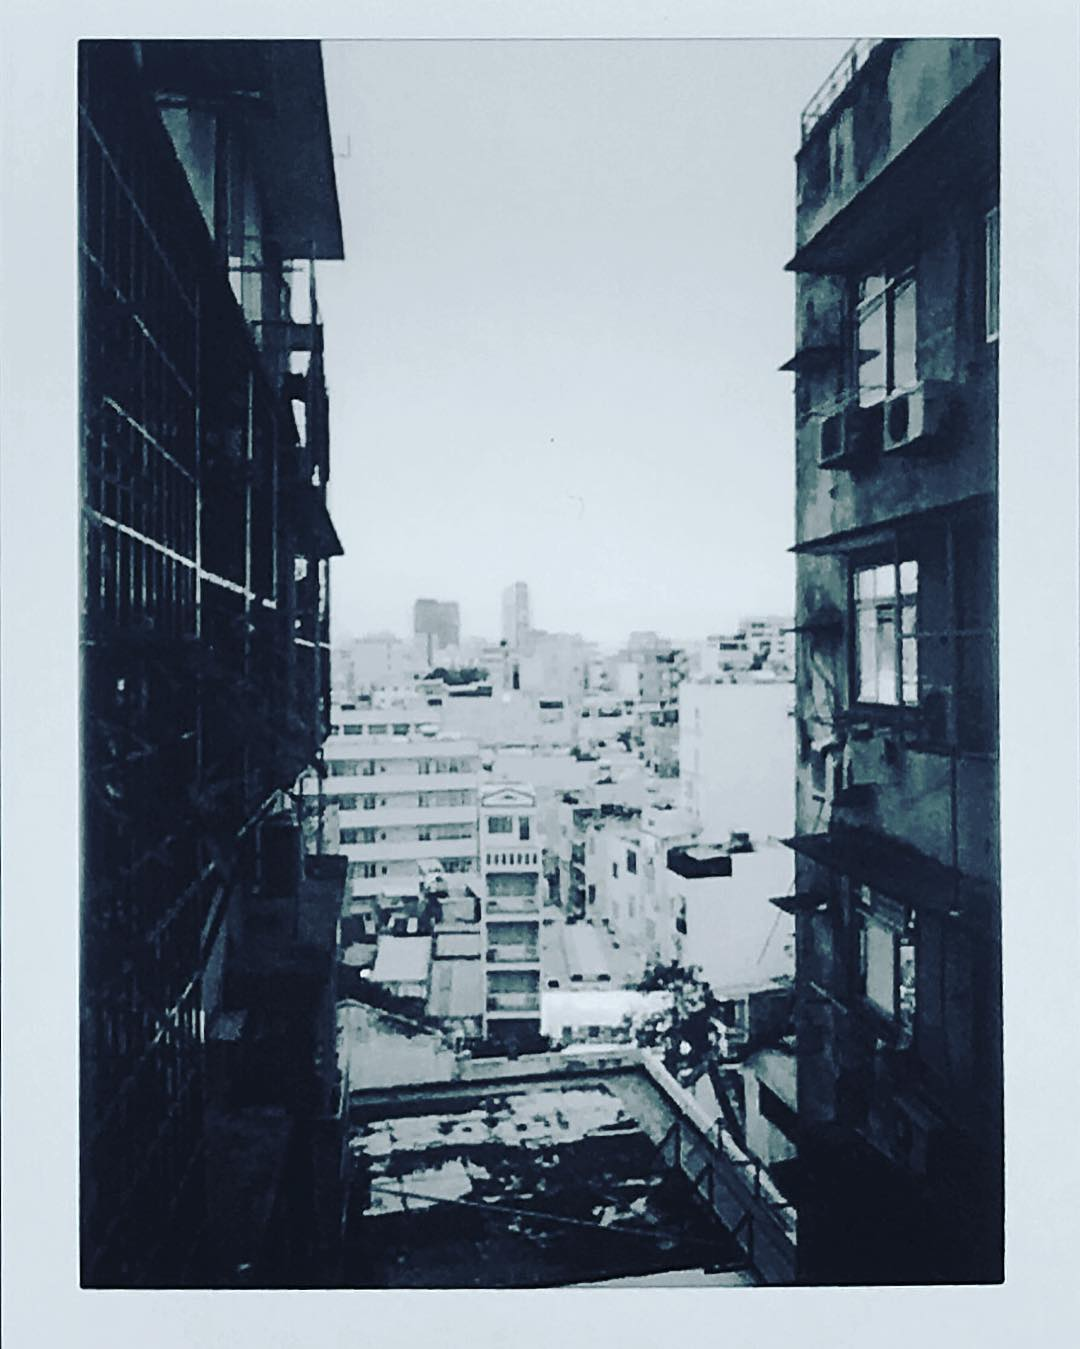 サイゴンの古いアパート Chung Cu, an old apartment of #saigon #instax